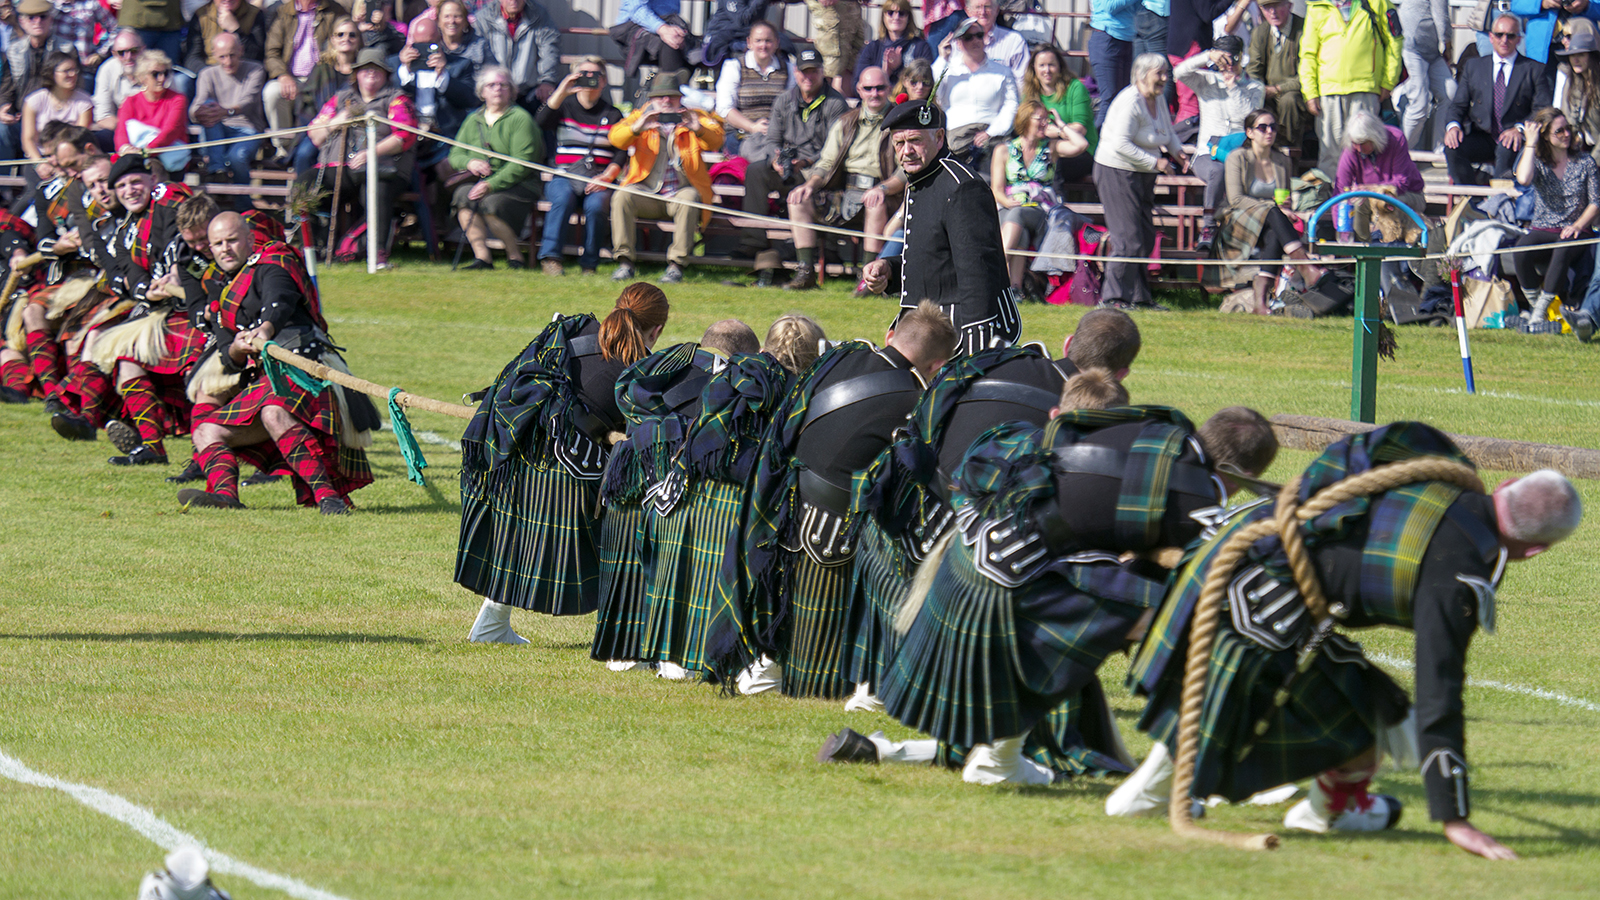 Tug of War at a Highland Games event in Scotland